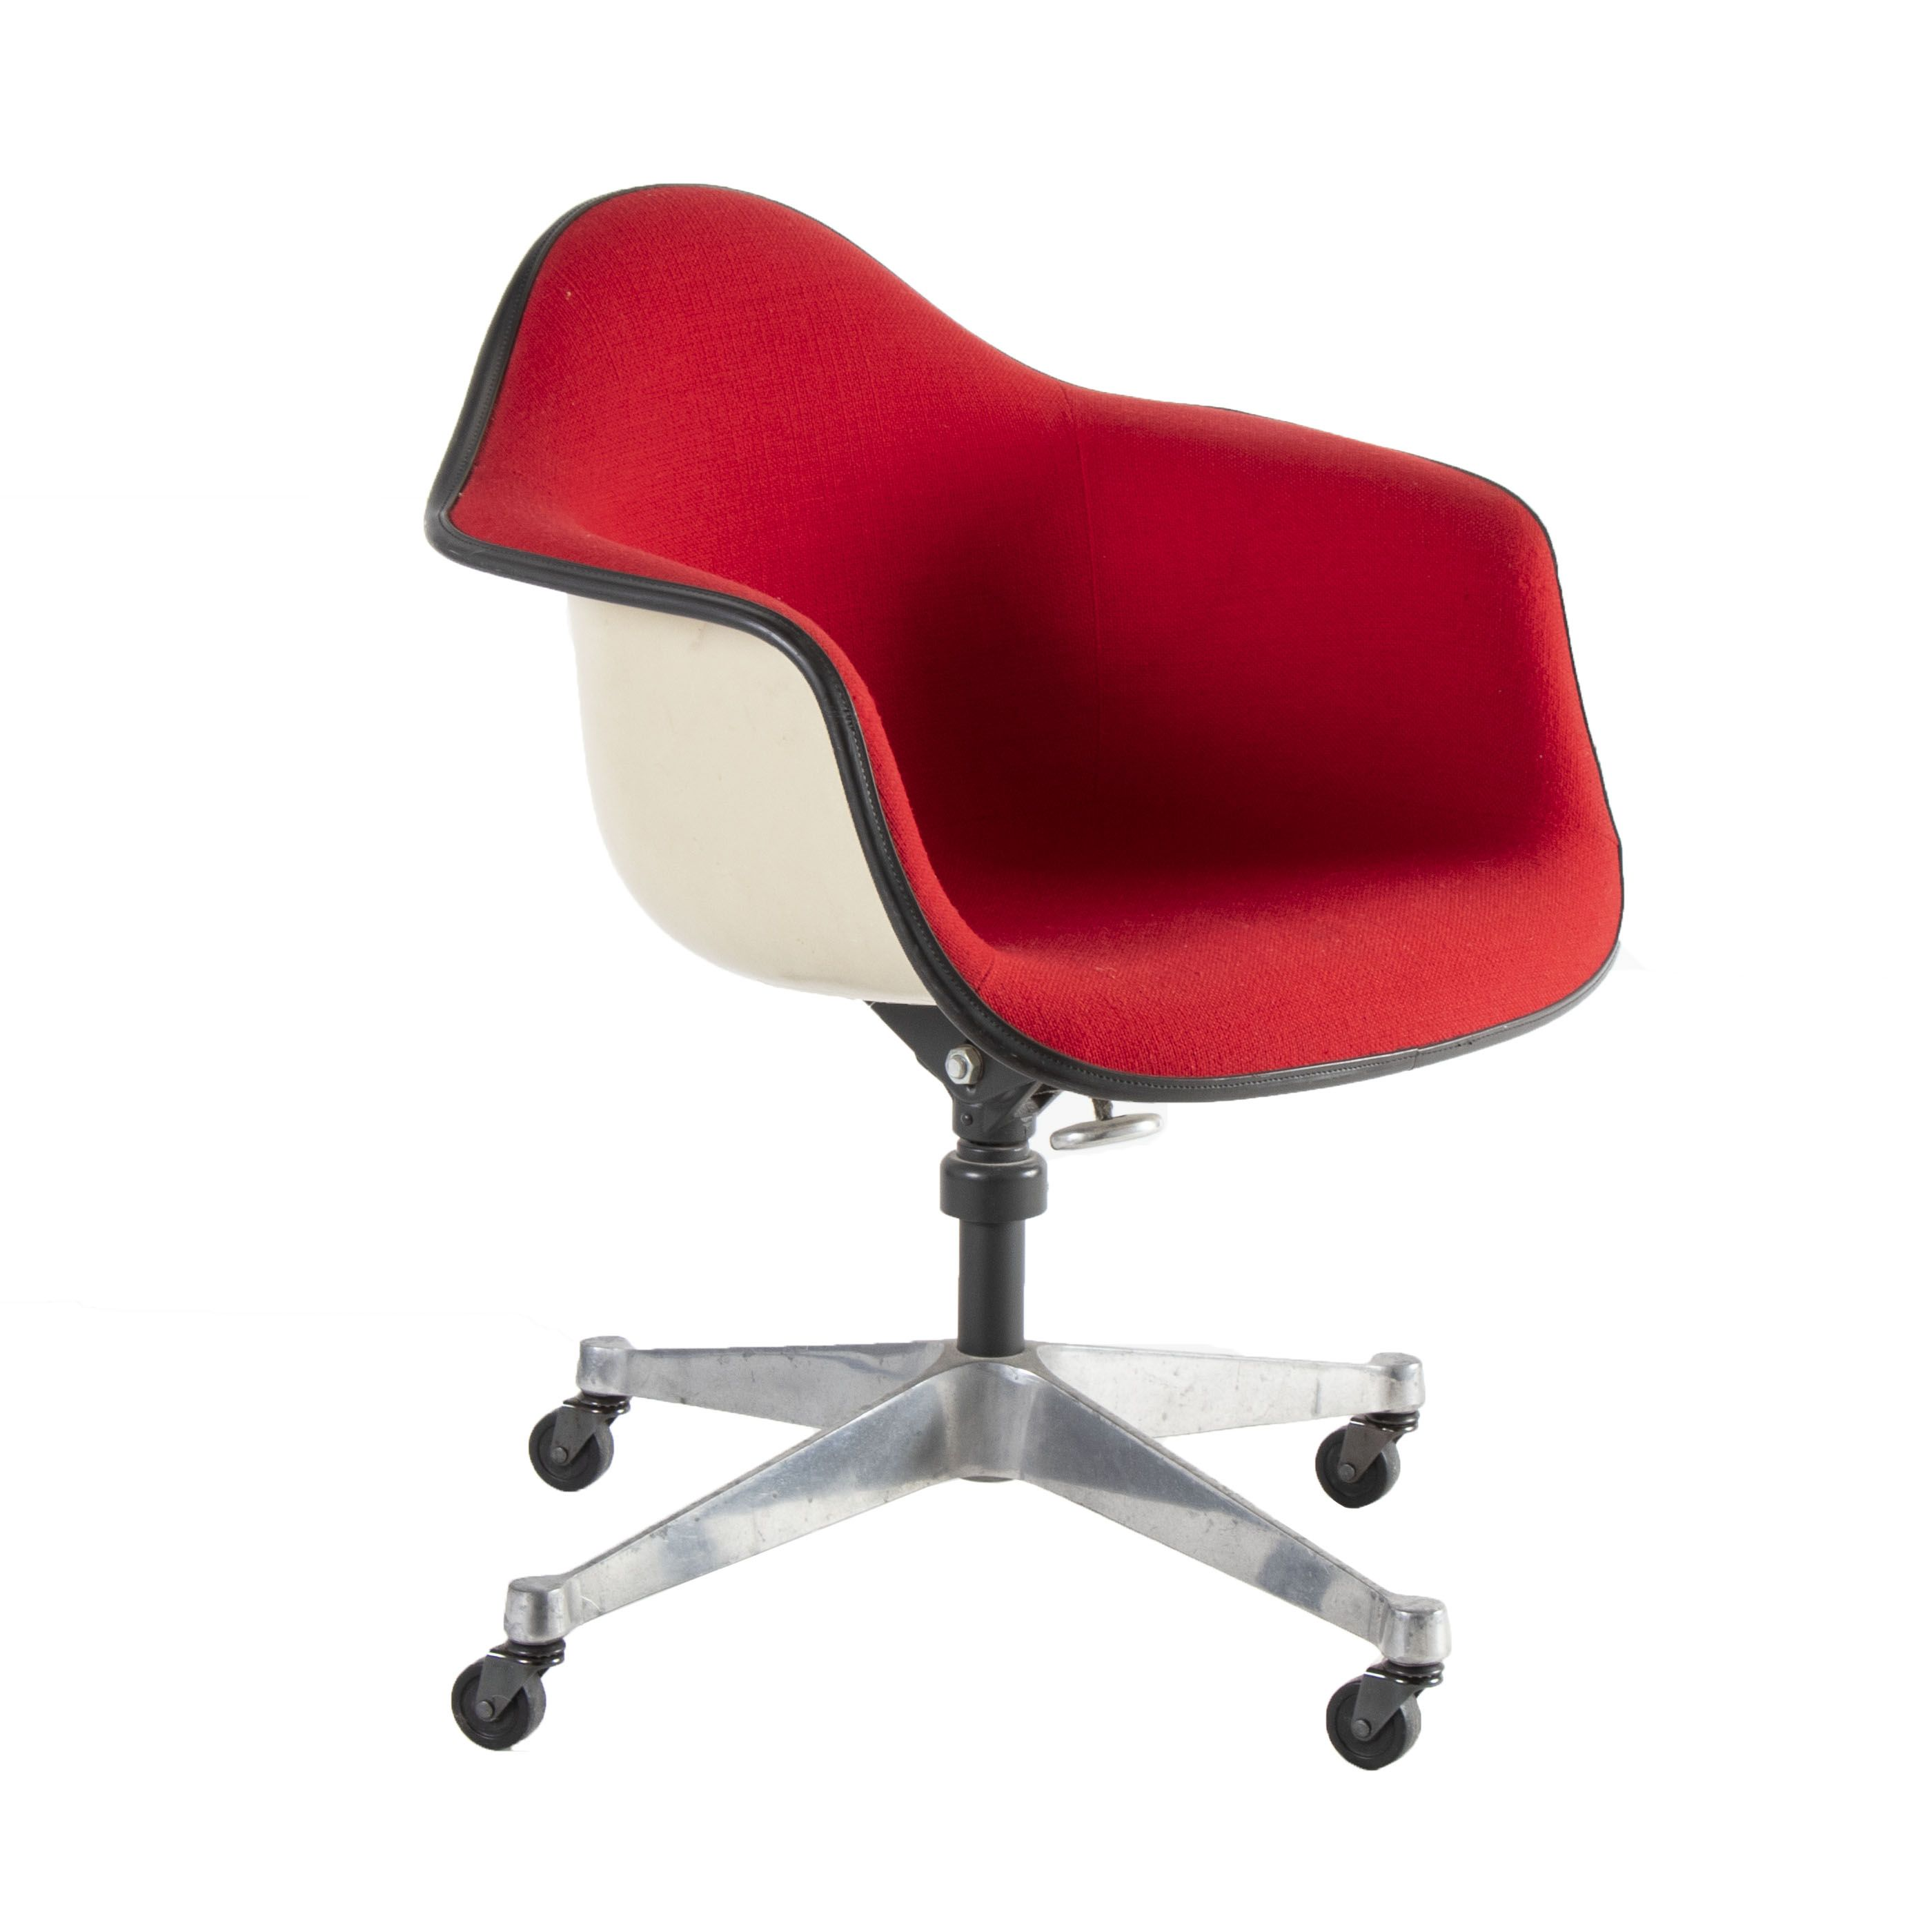 Chair On Wheels The Eames Molded Plastic Fiberglass Armchair On Wheels Is A